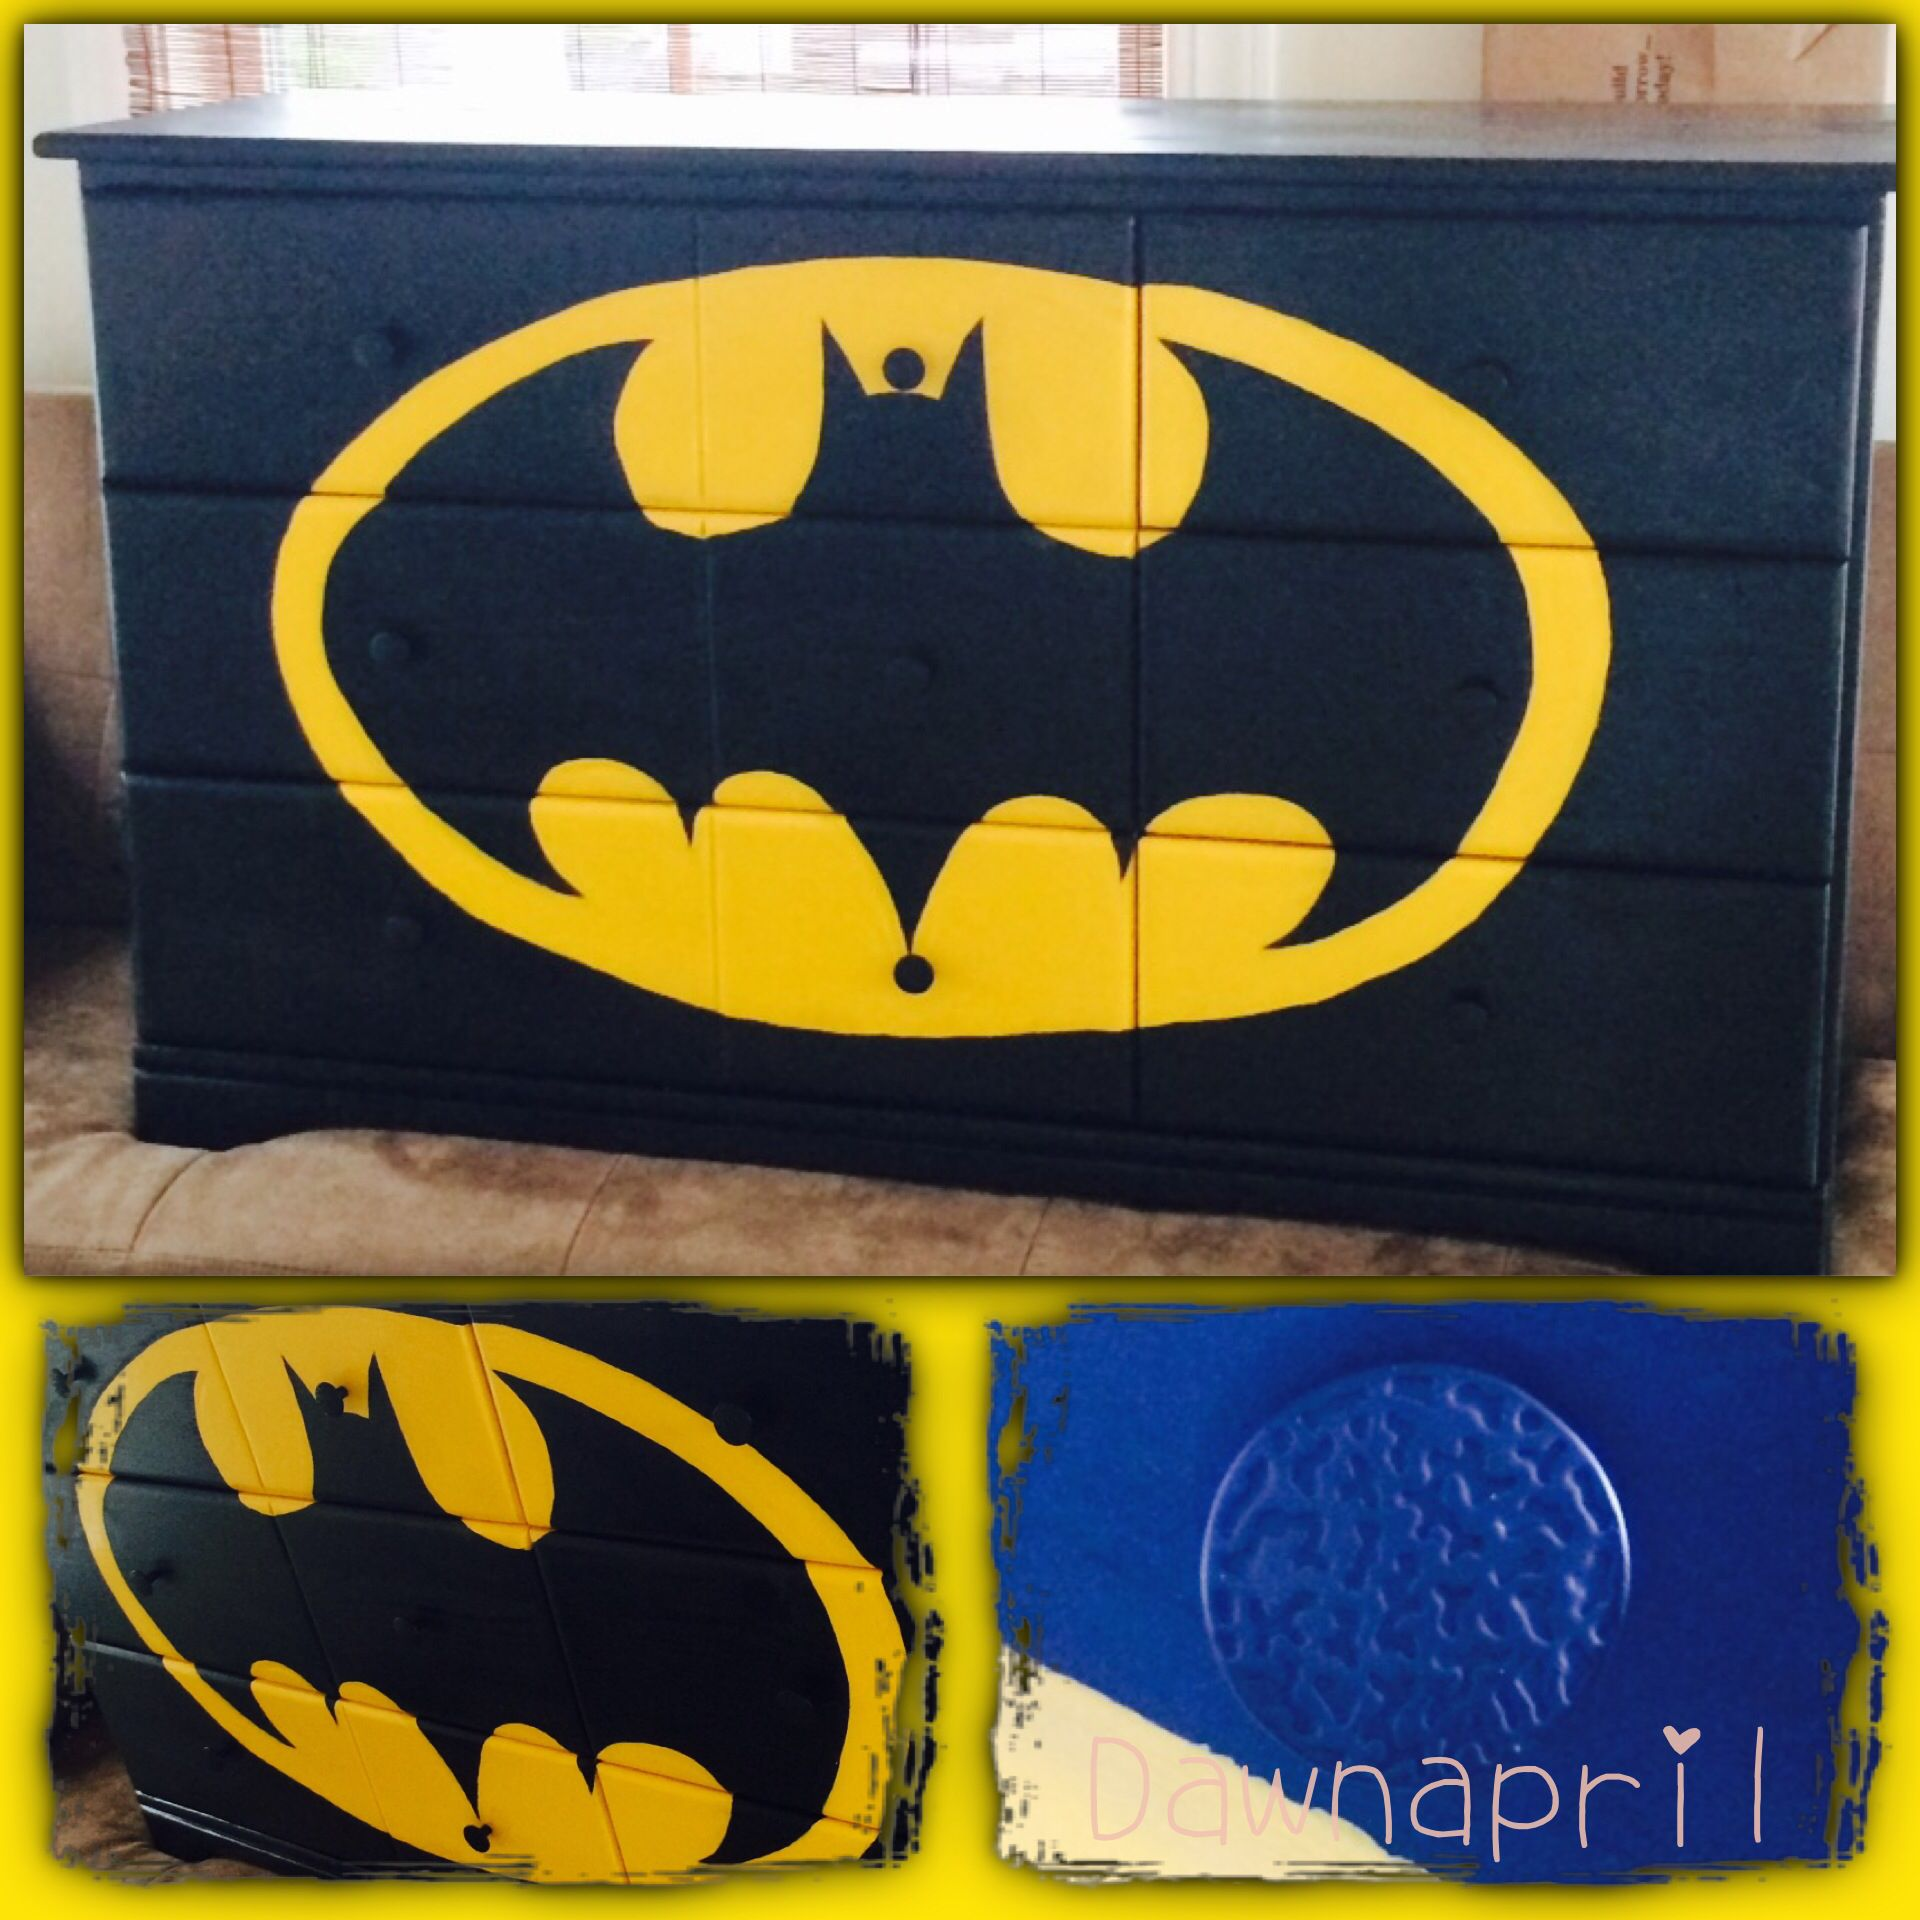 batman childrens table and chairs bistro tables outdoor for your home dawnapril signal yellow black